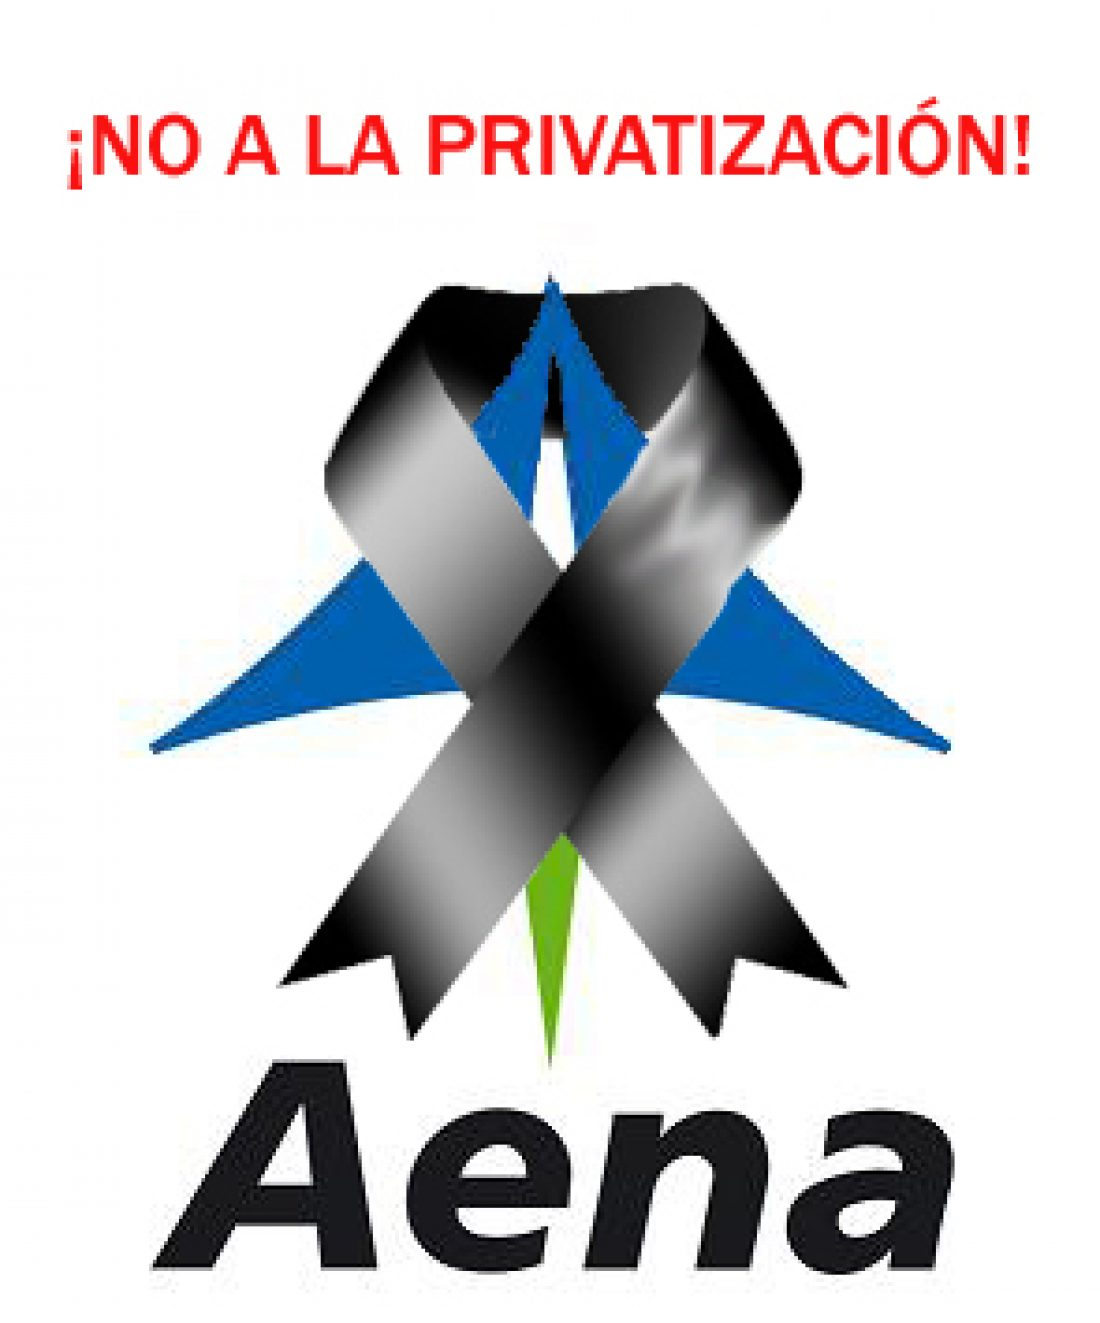 La privatización monopolística de Aena: un modelo a todas luces indeseable